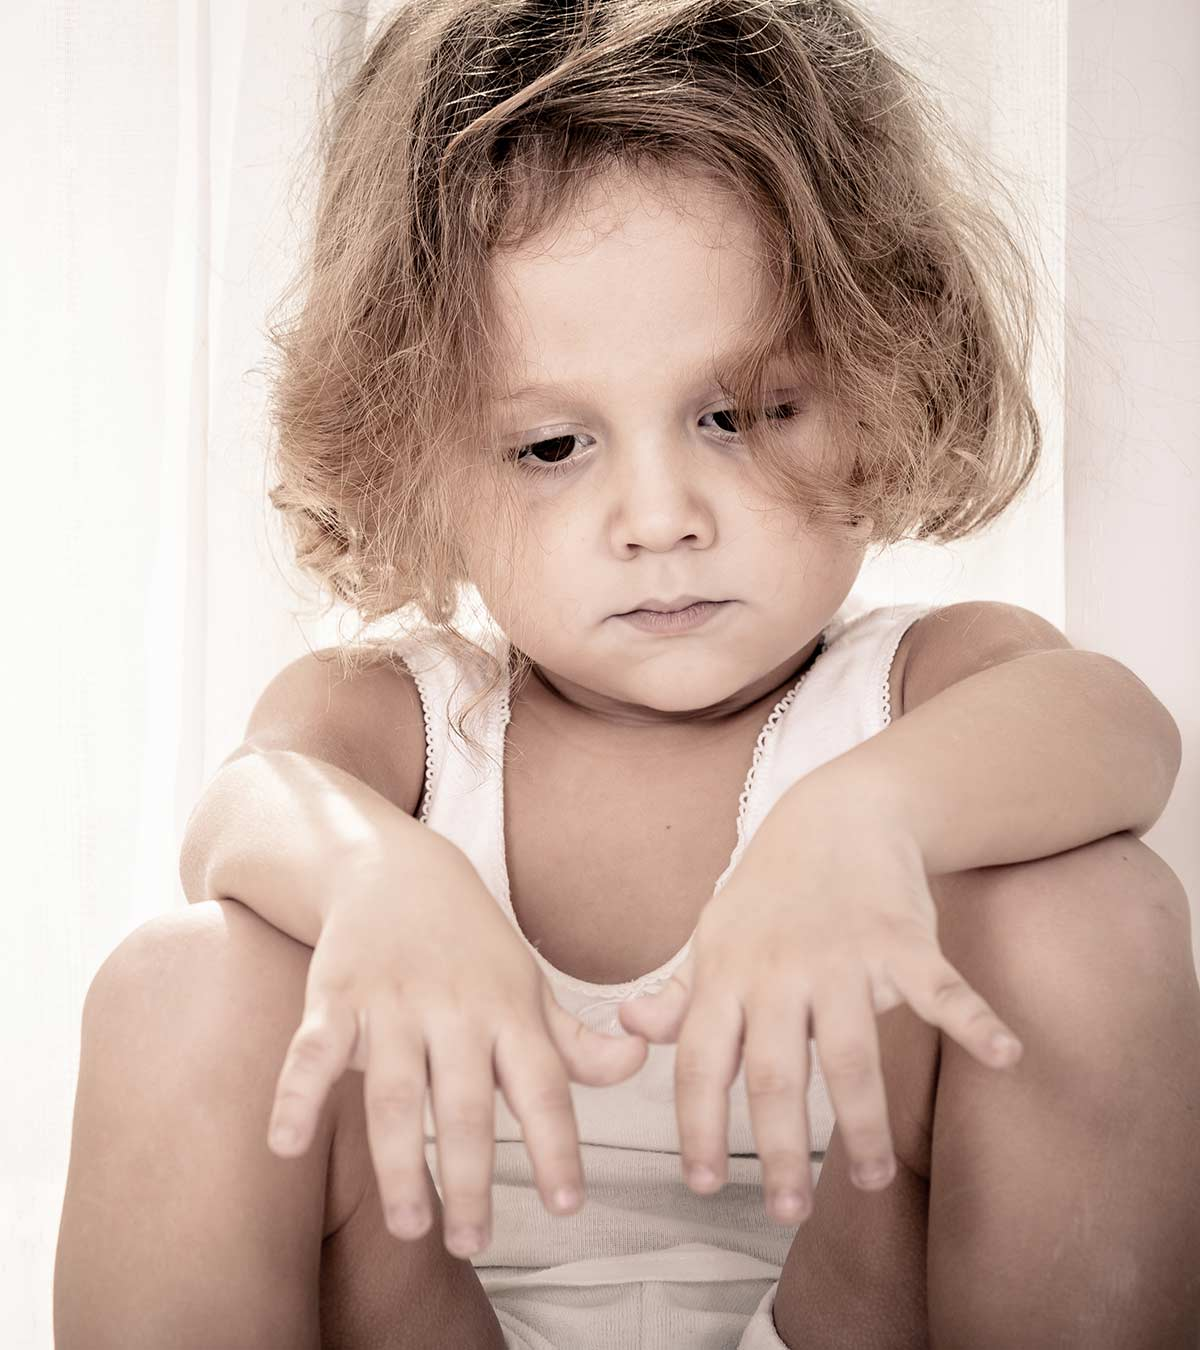 8 Serious Symptoms Of Asperger Syndrome In Toddlers